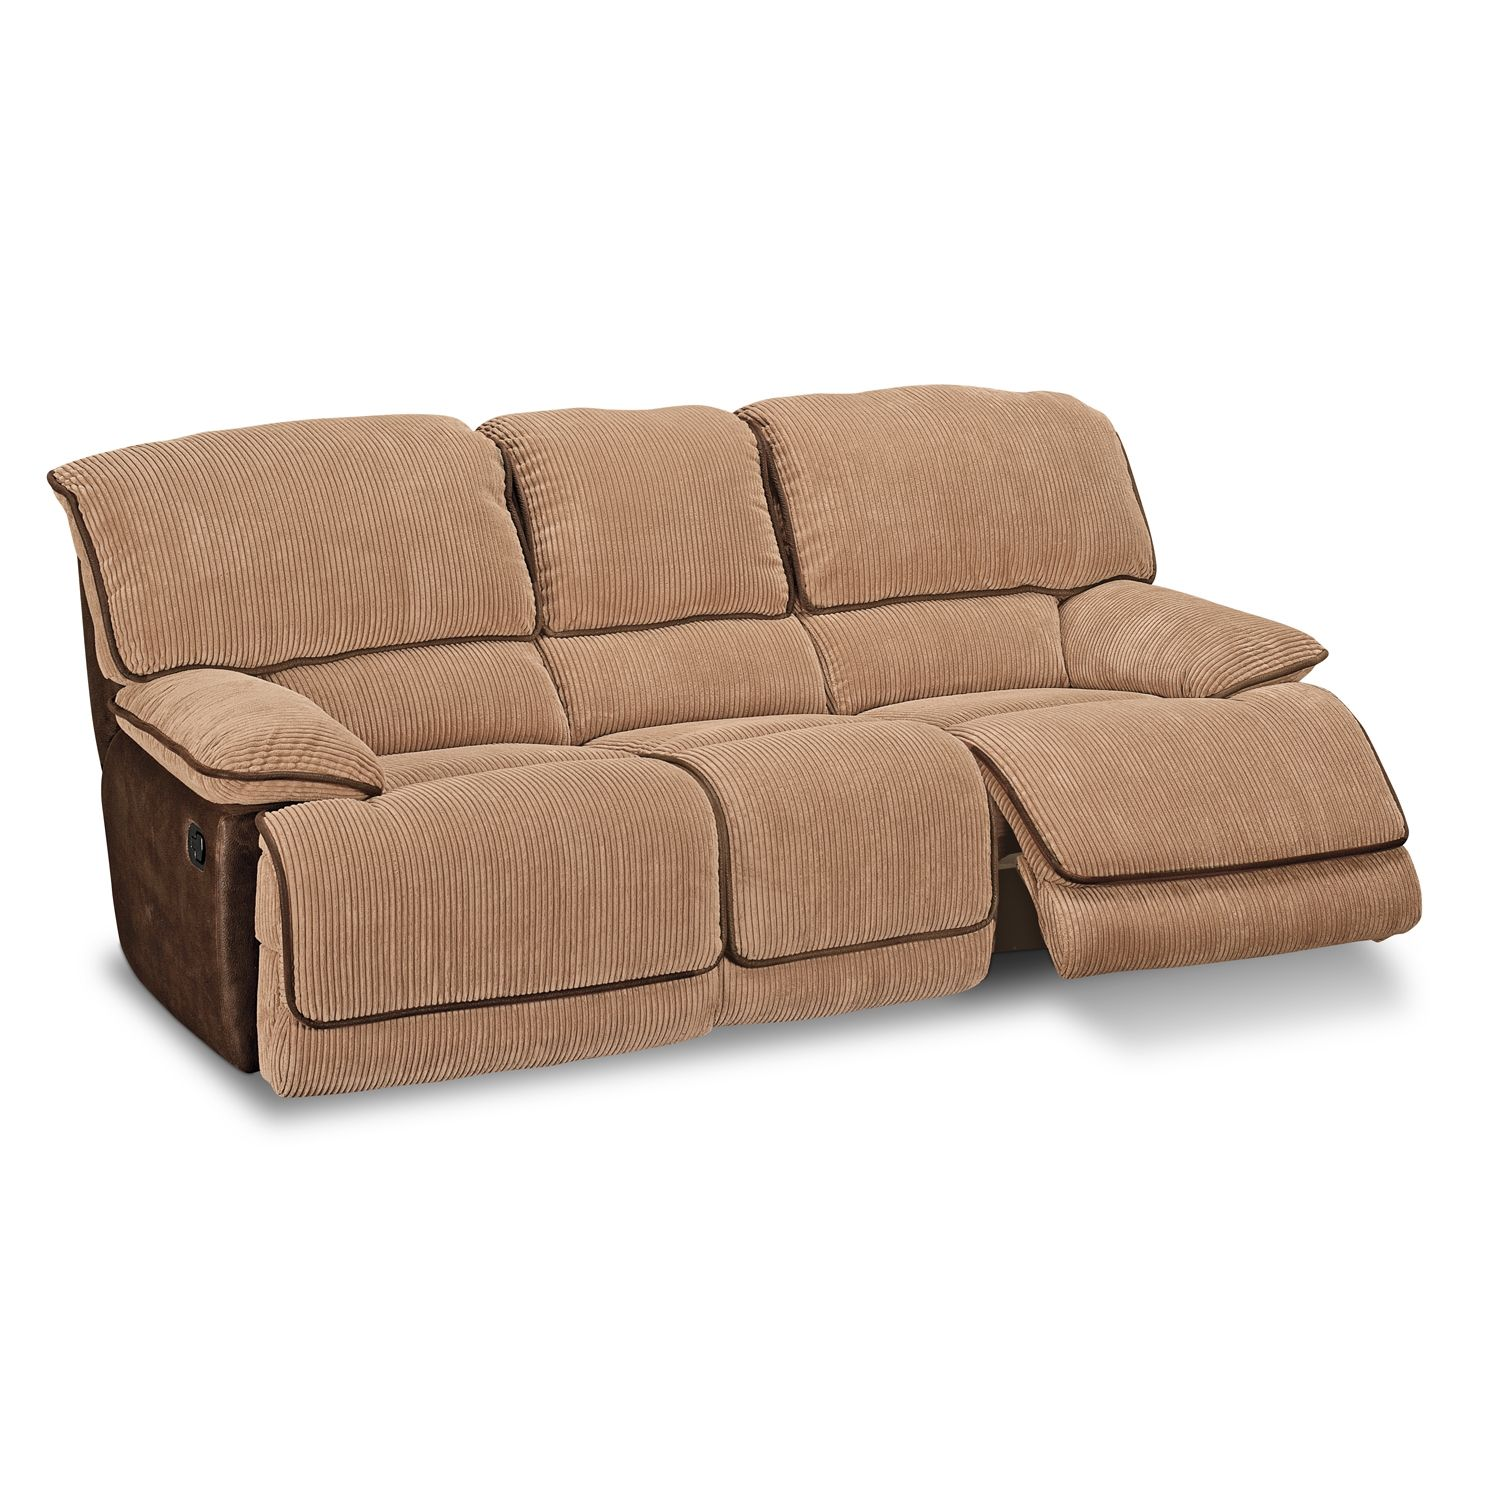 Buy lineVCF Coronado Leather Power Reclining Sofa Value City